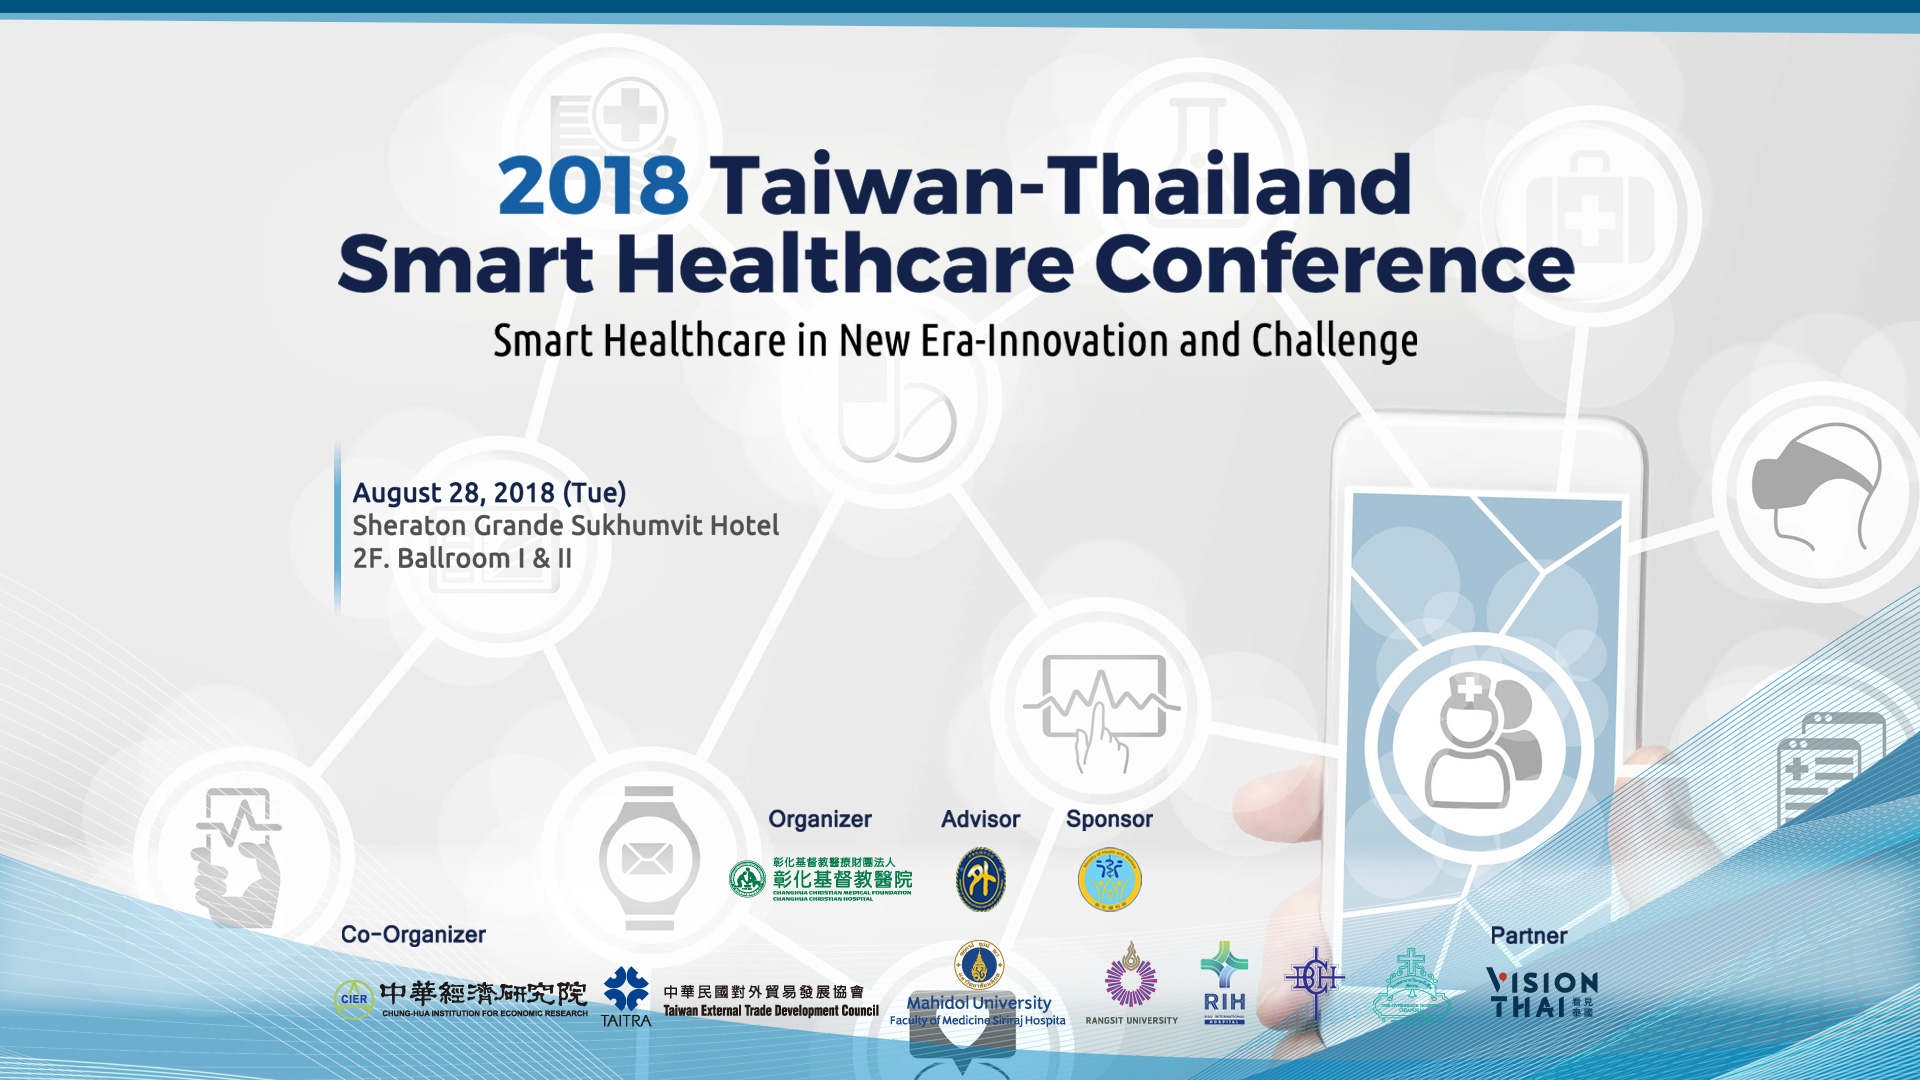 Taiwan-Thailand Smart Healthcare Conference